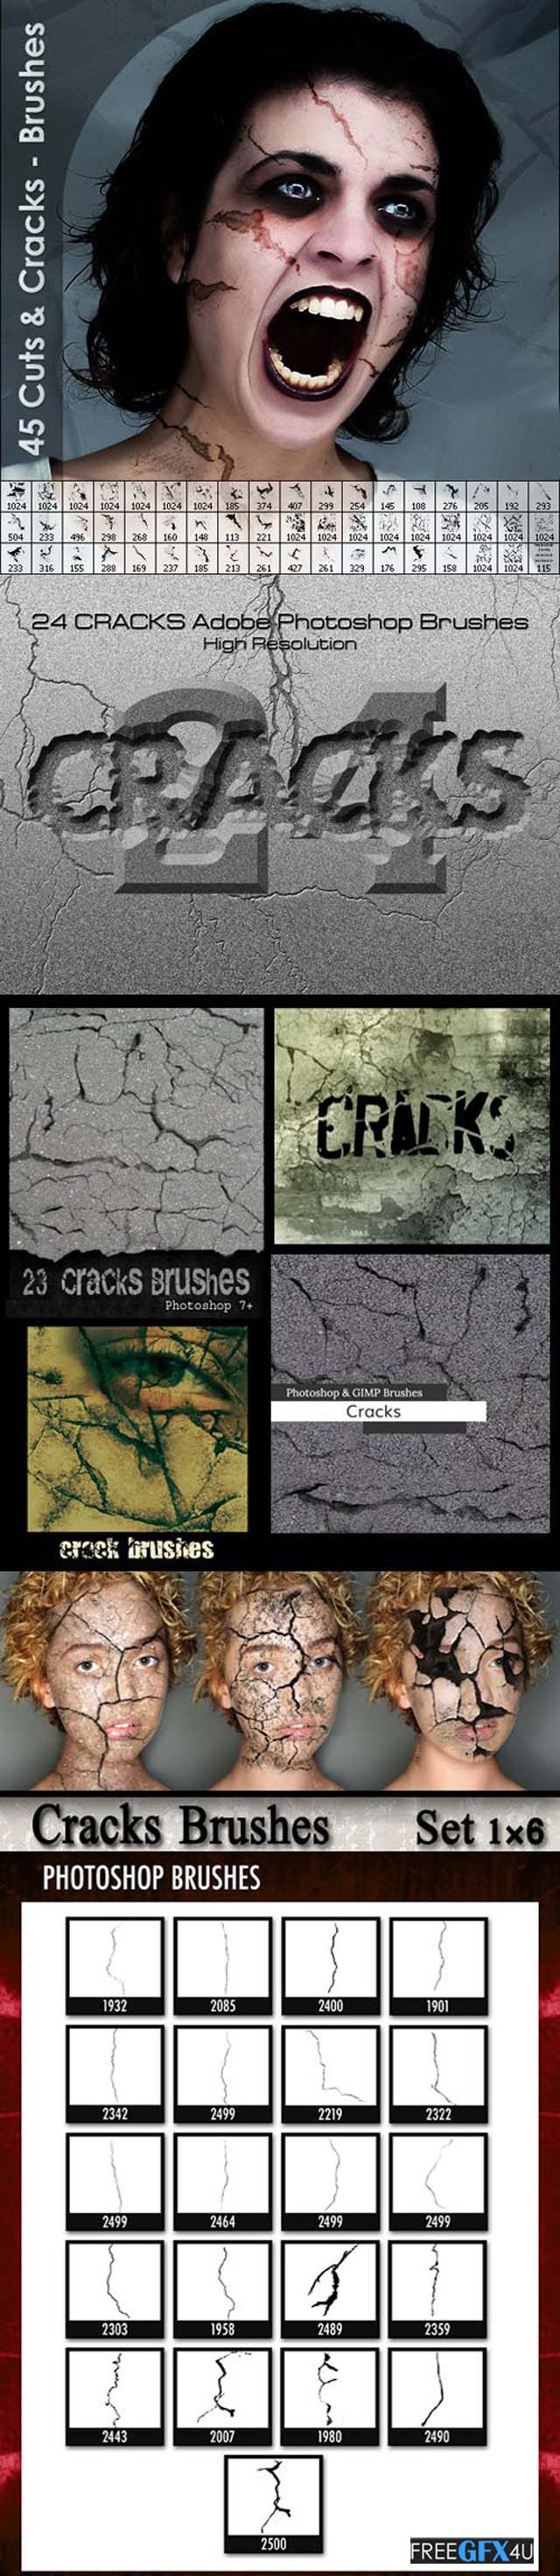 135+ Pretty Cuts And Cracks Brushes For Photoshop